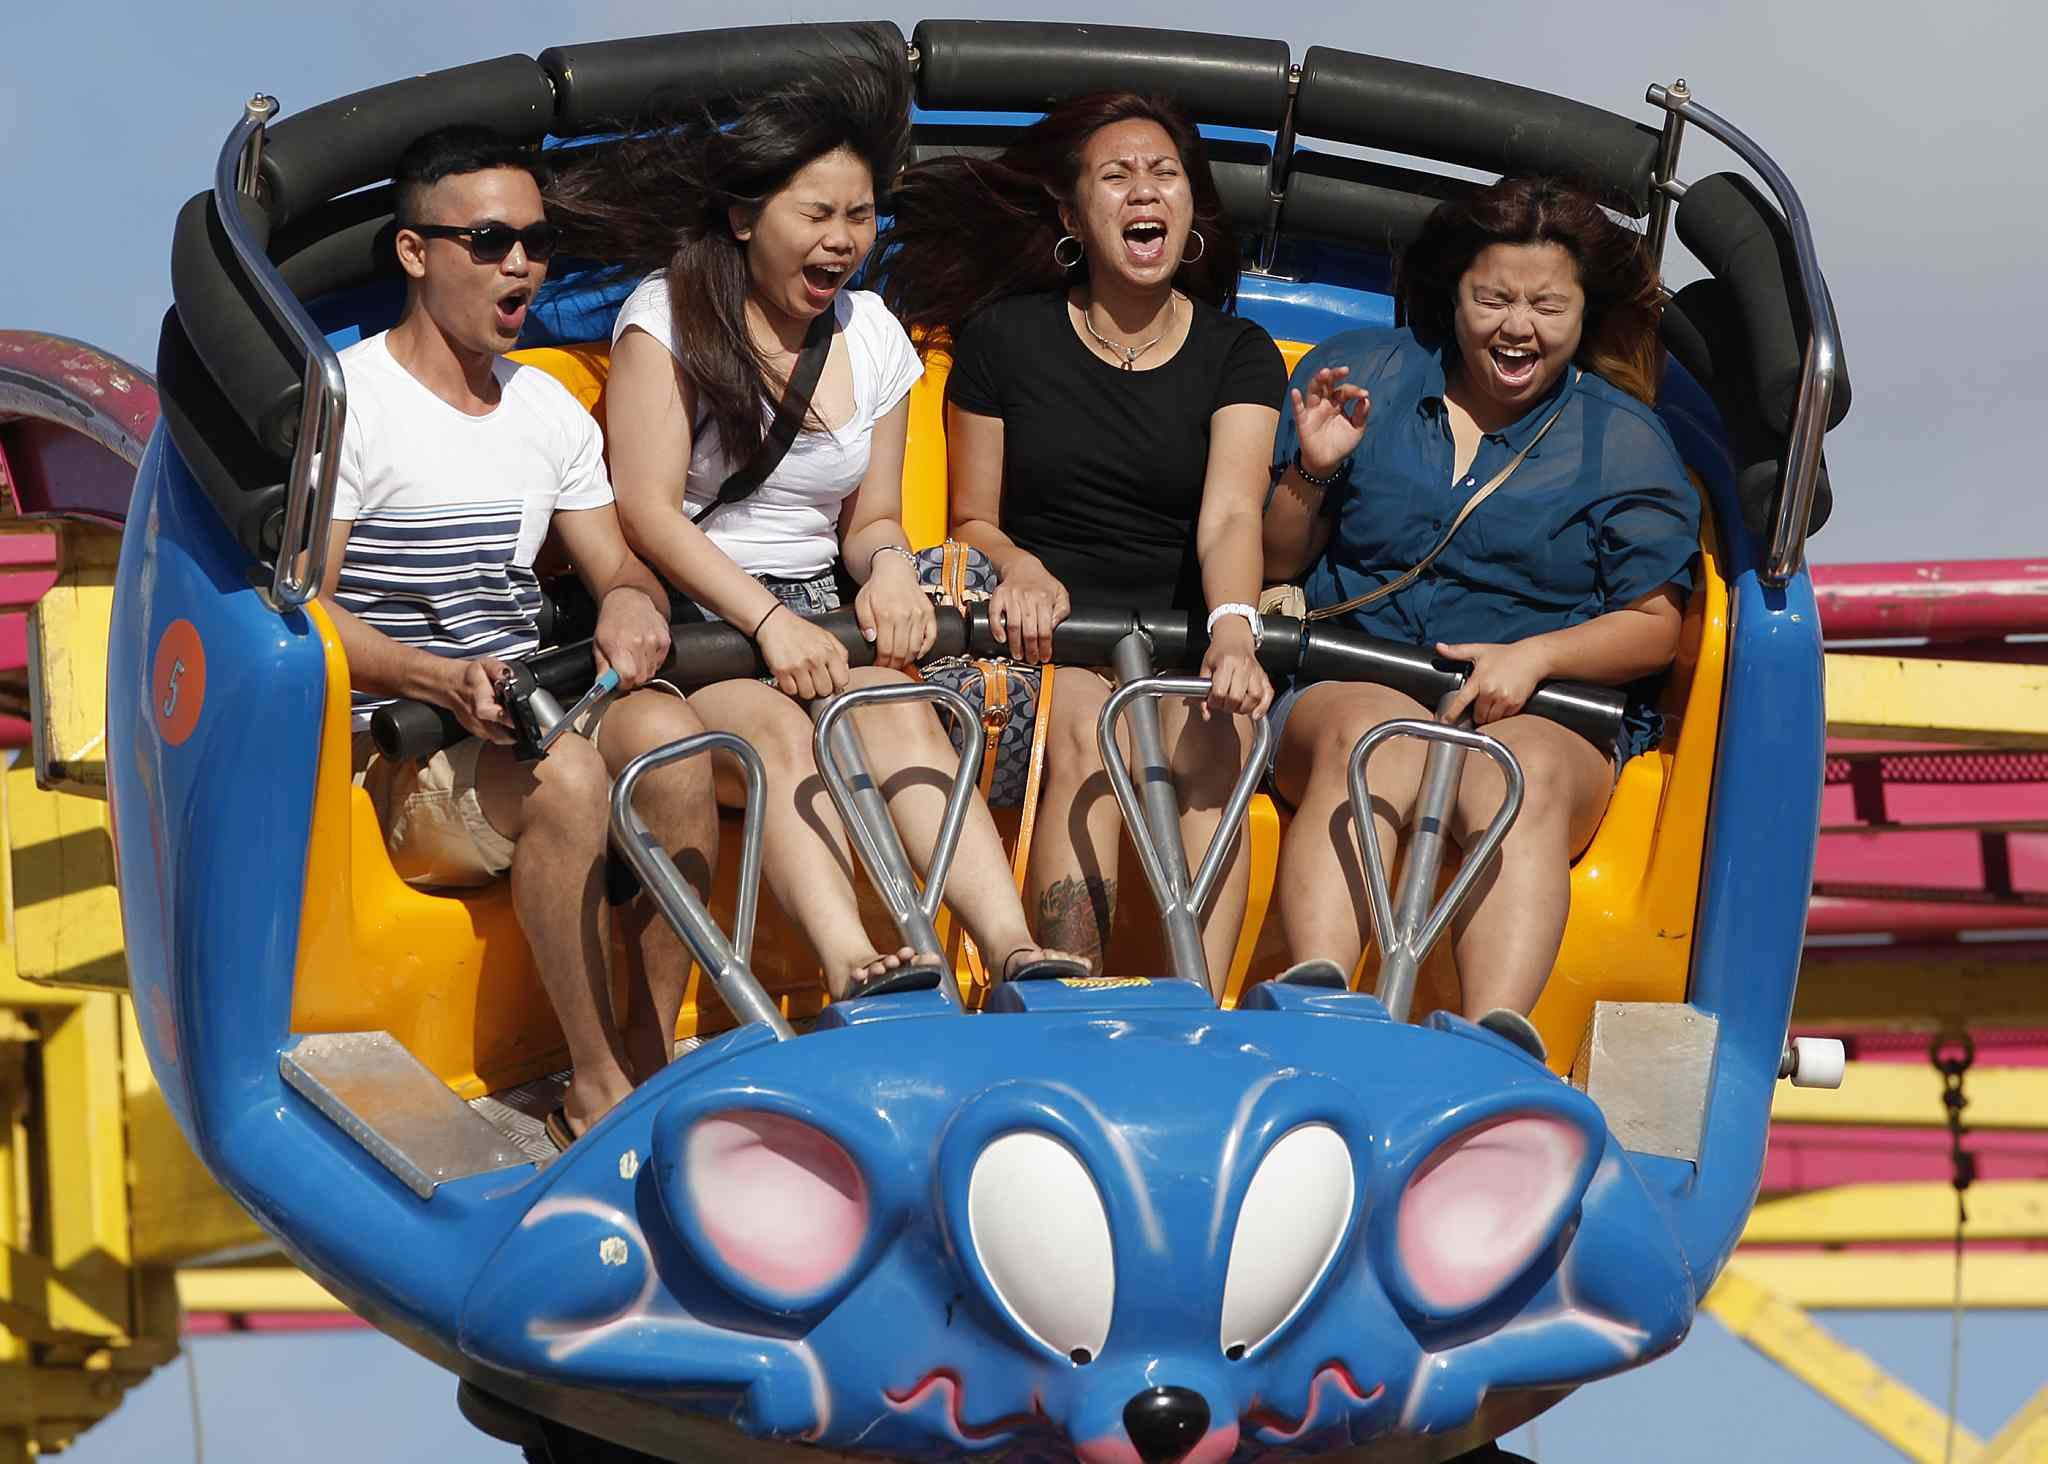 From left, Ace Martin Prieto, Norlyn Brual, Cynthia Berces and Naldine Reyeson take a ride on the Crazy Mouse at The Red River Ex on Tuesday.